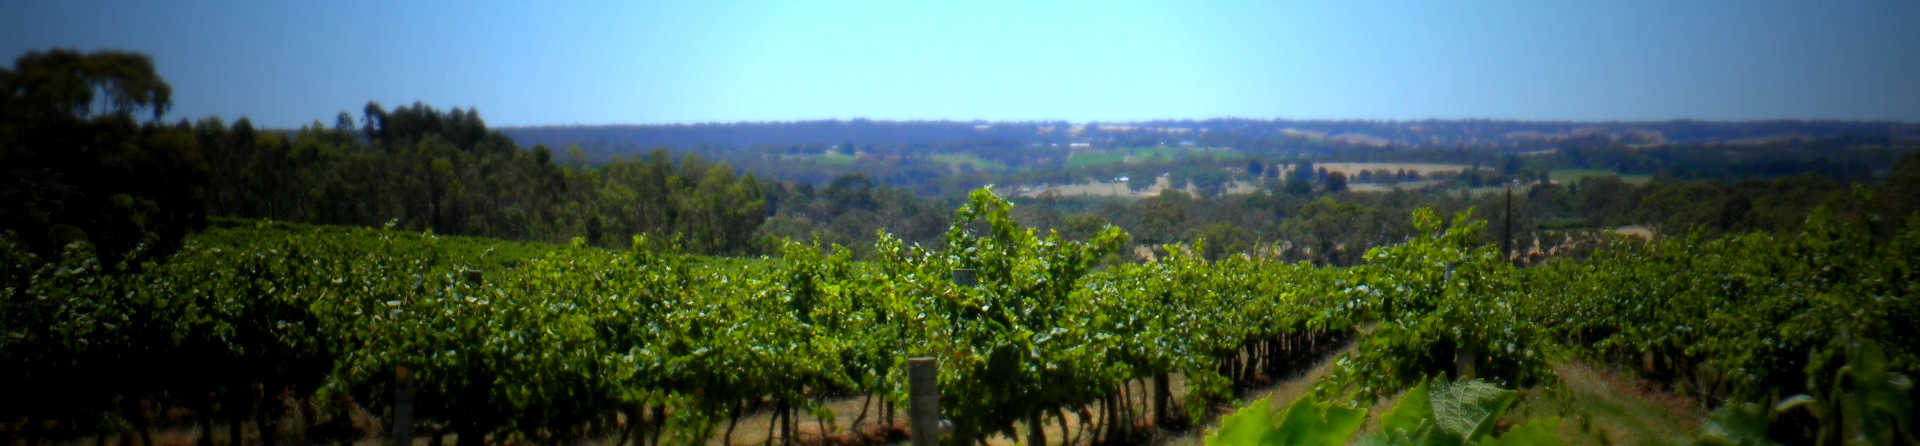 How many wineries are in McLaren Vale?